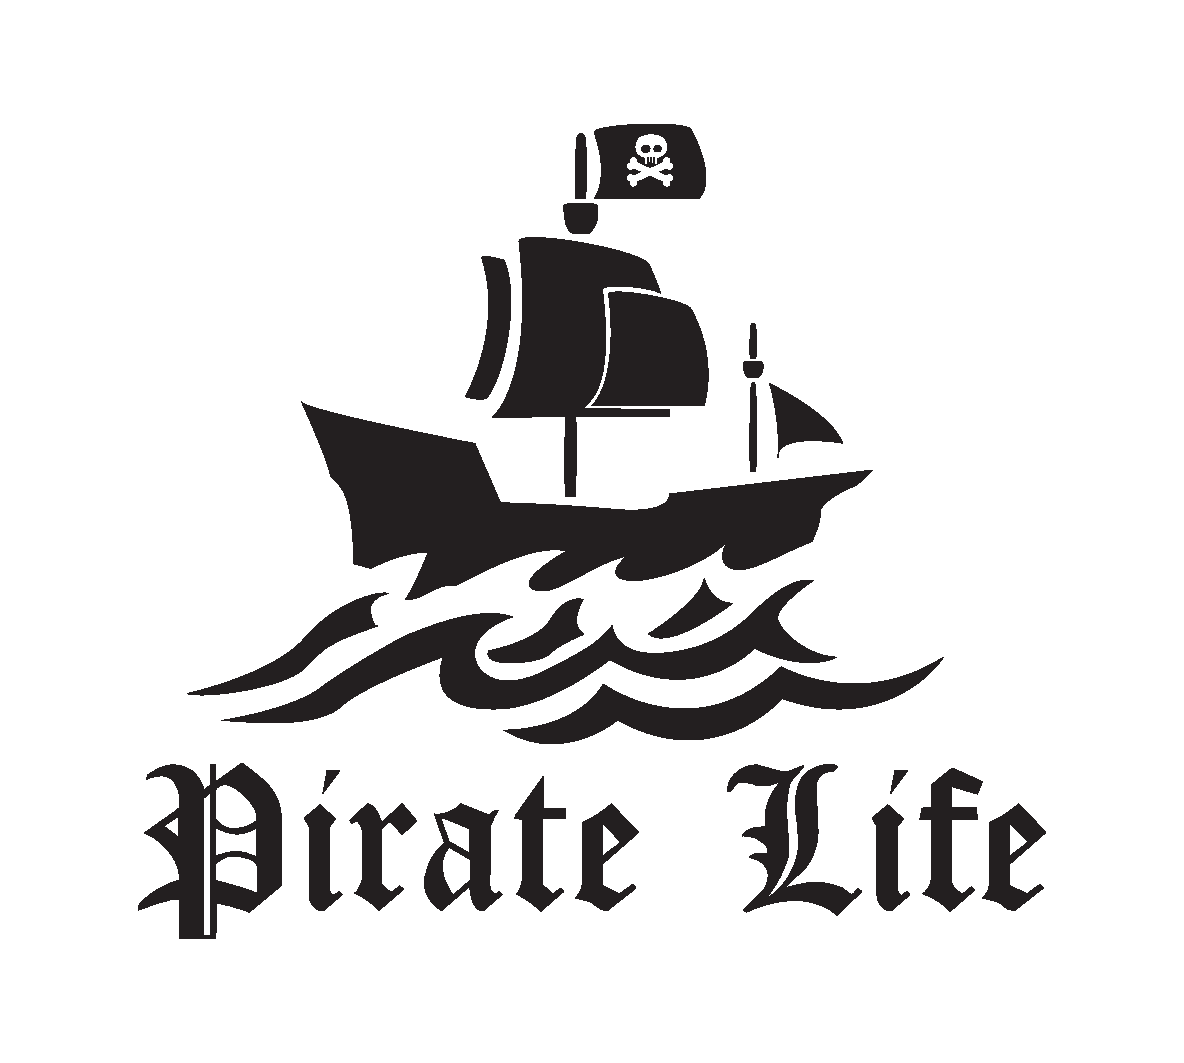 Pirate Life Centre Island Toronto